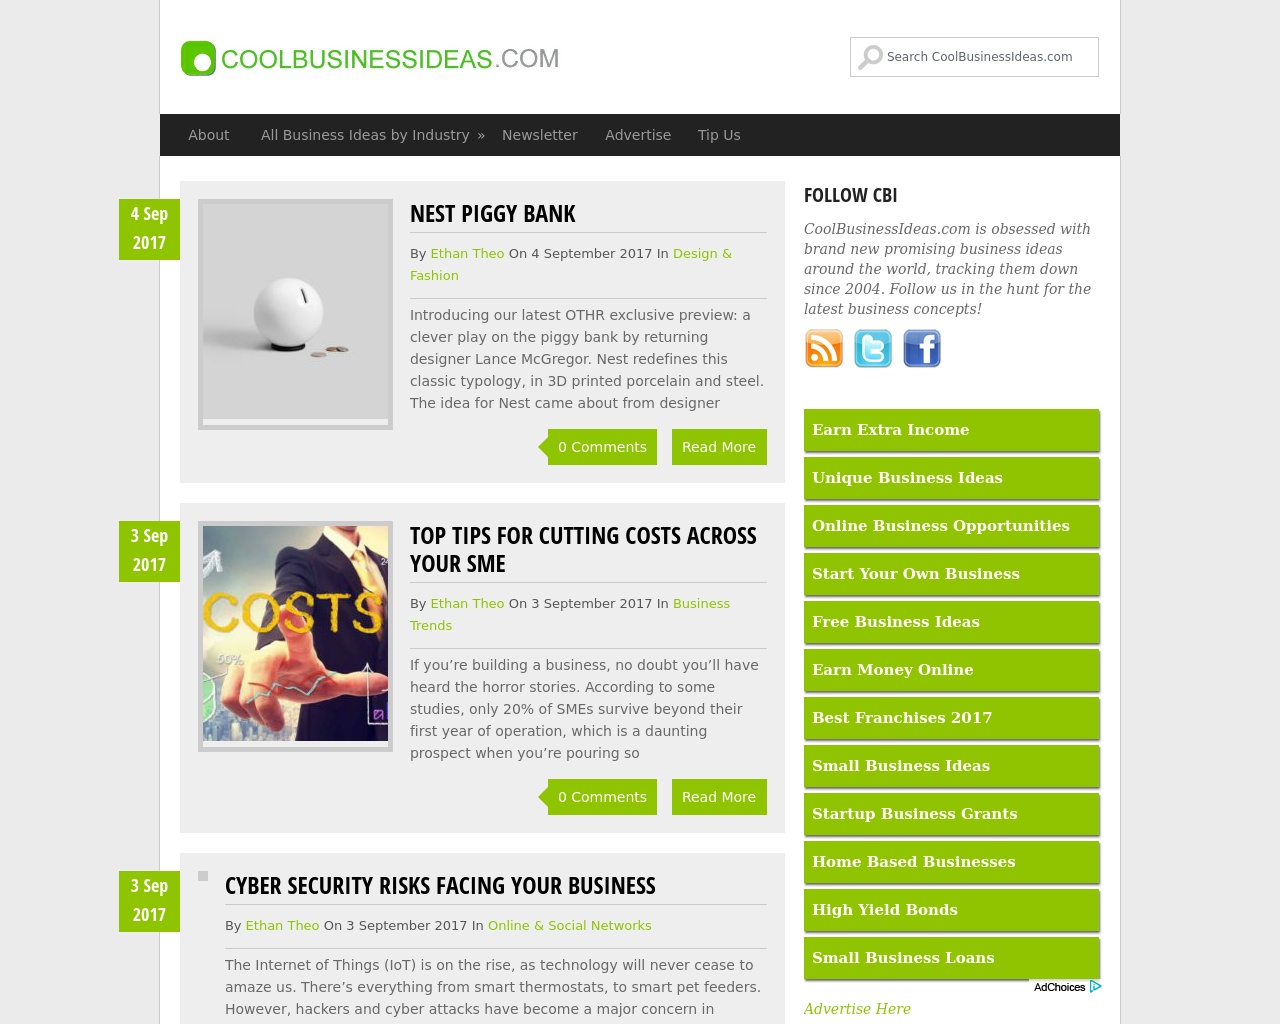 Cool-Business-Ideas-Advertising-Reviews-Pricing